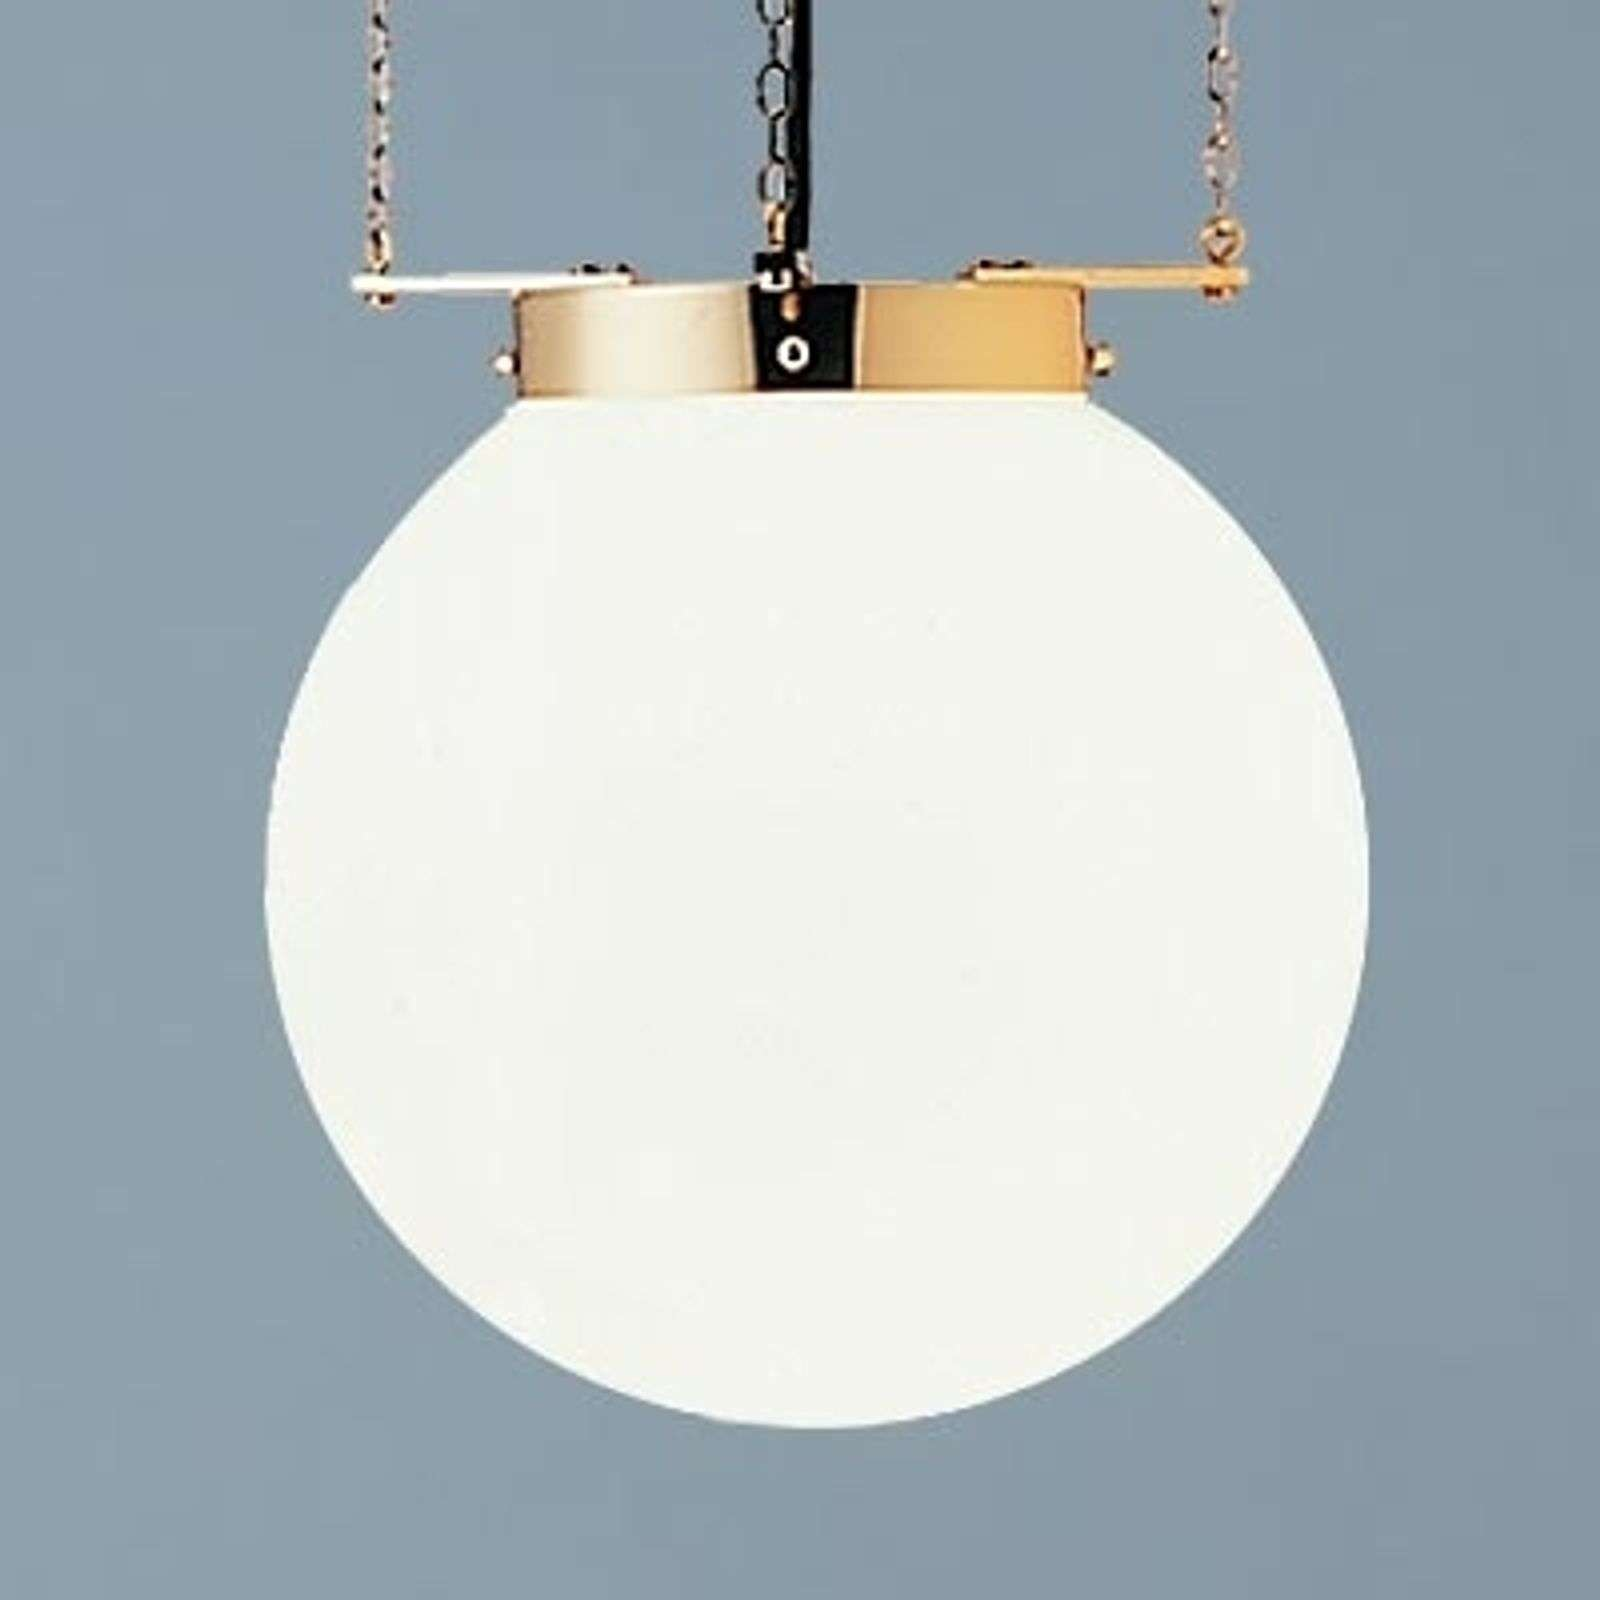 Suspension laiton style Bauhaus 40 cm